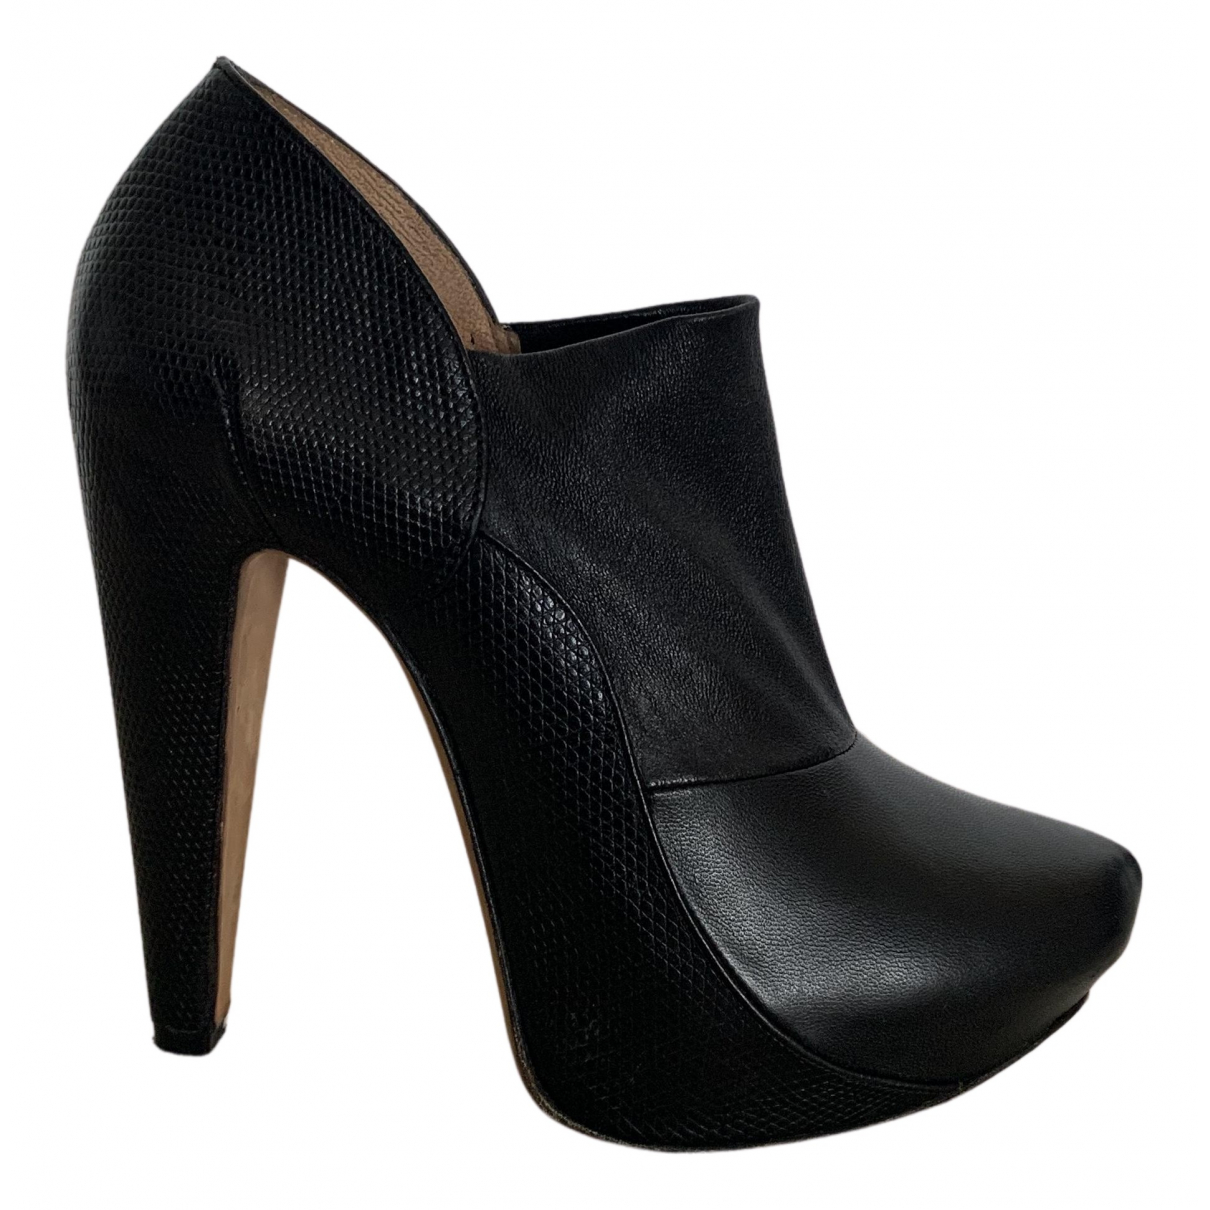 Roland Mouret N Black Leather Ankle boots for Women 38.5 EU